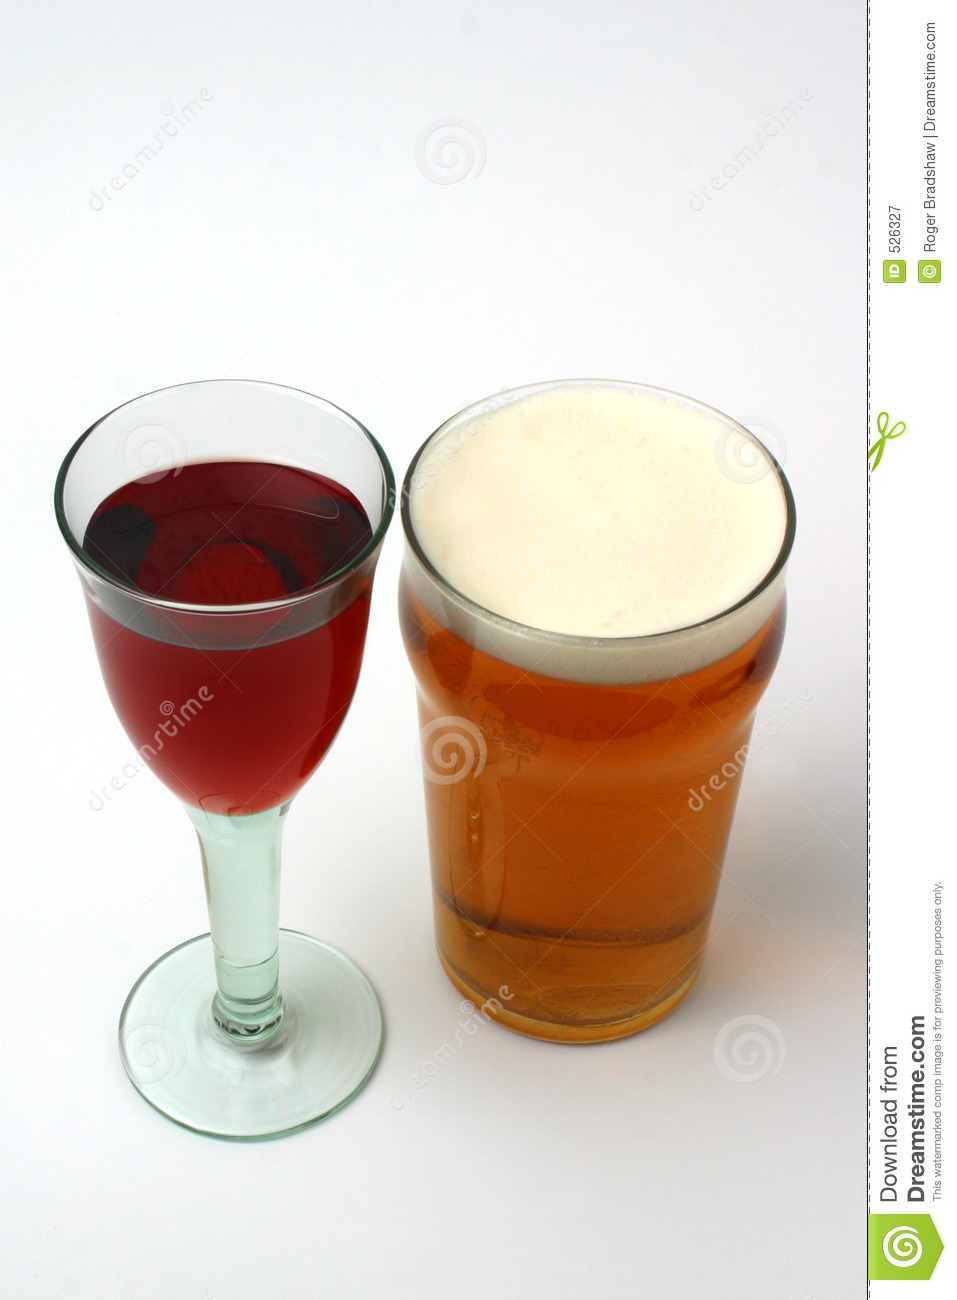 Wine And Beer Royalty Free Stock Photography - Image: 526327